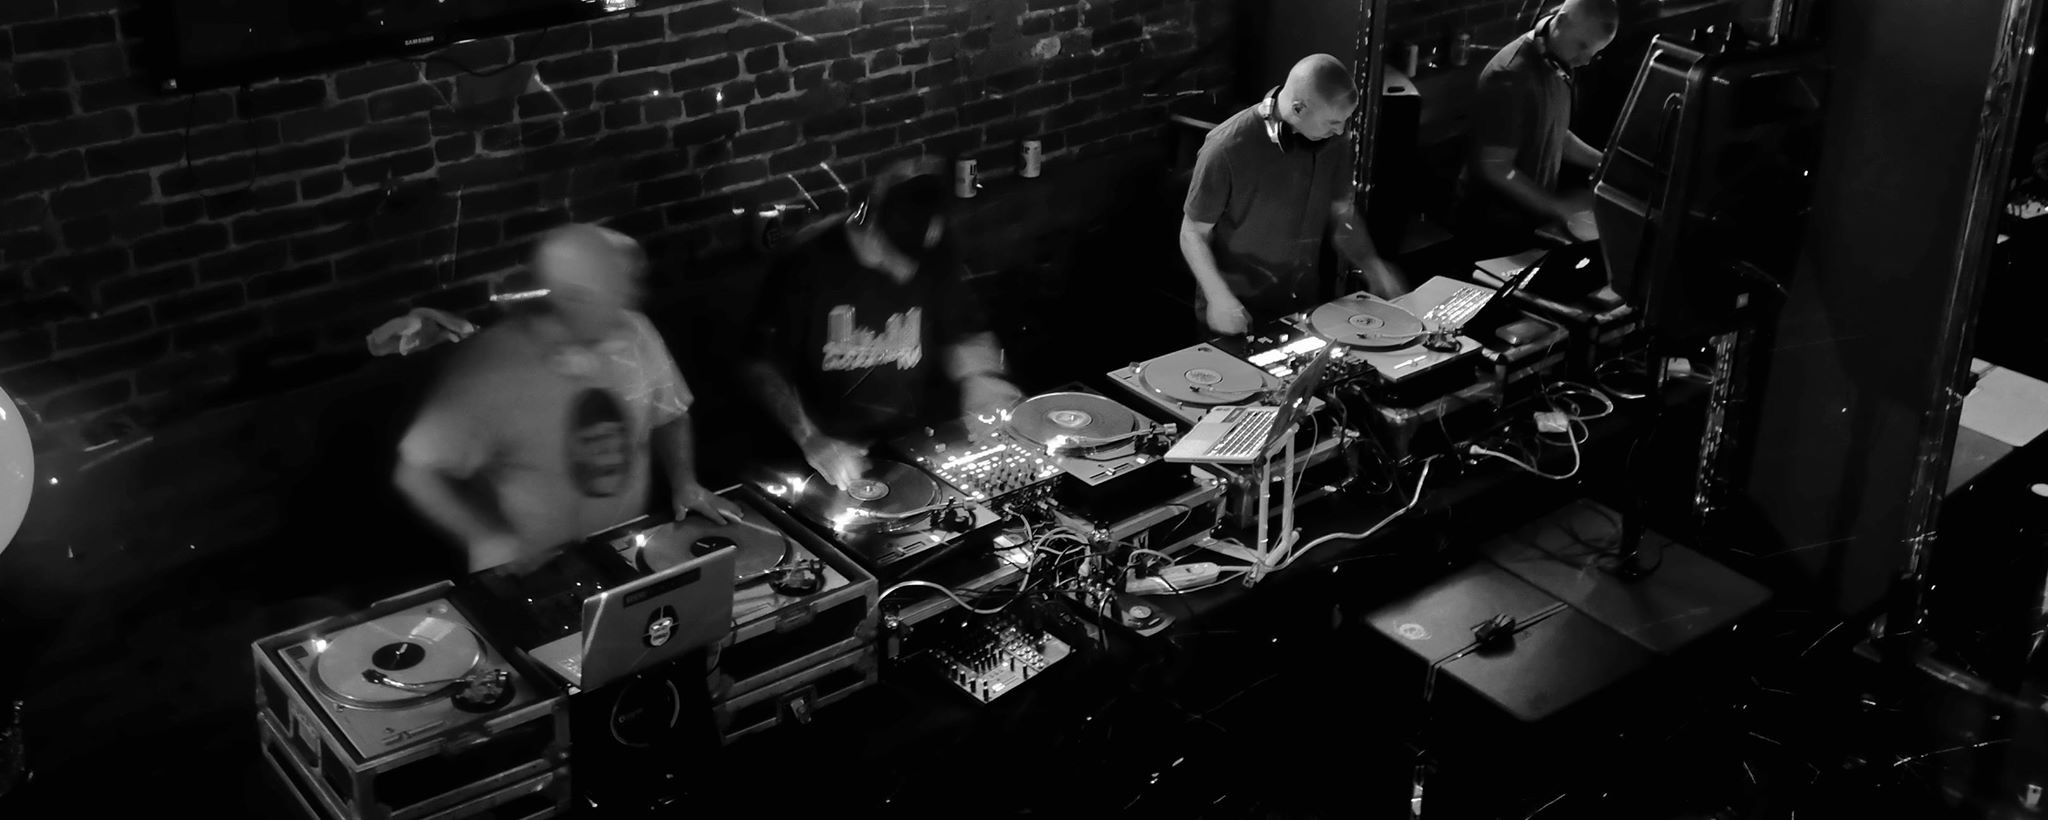 Rapture Charlottesville - We go by the Duck Brothers and we play top 40 with a twist. 6 Turntables at all times!